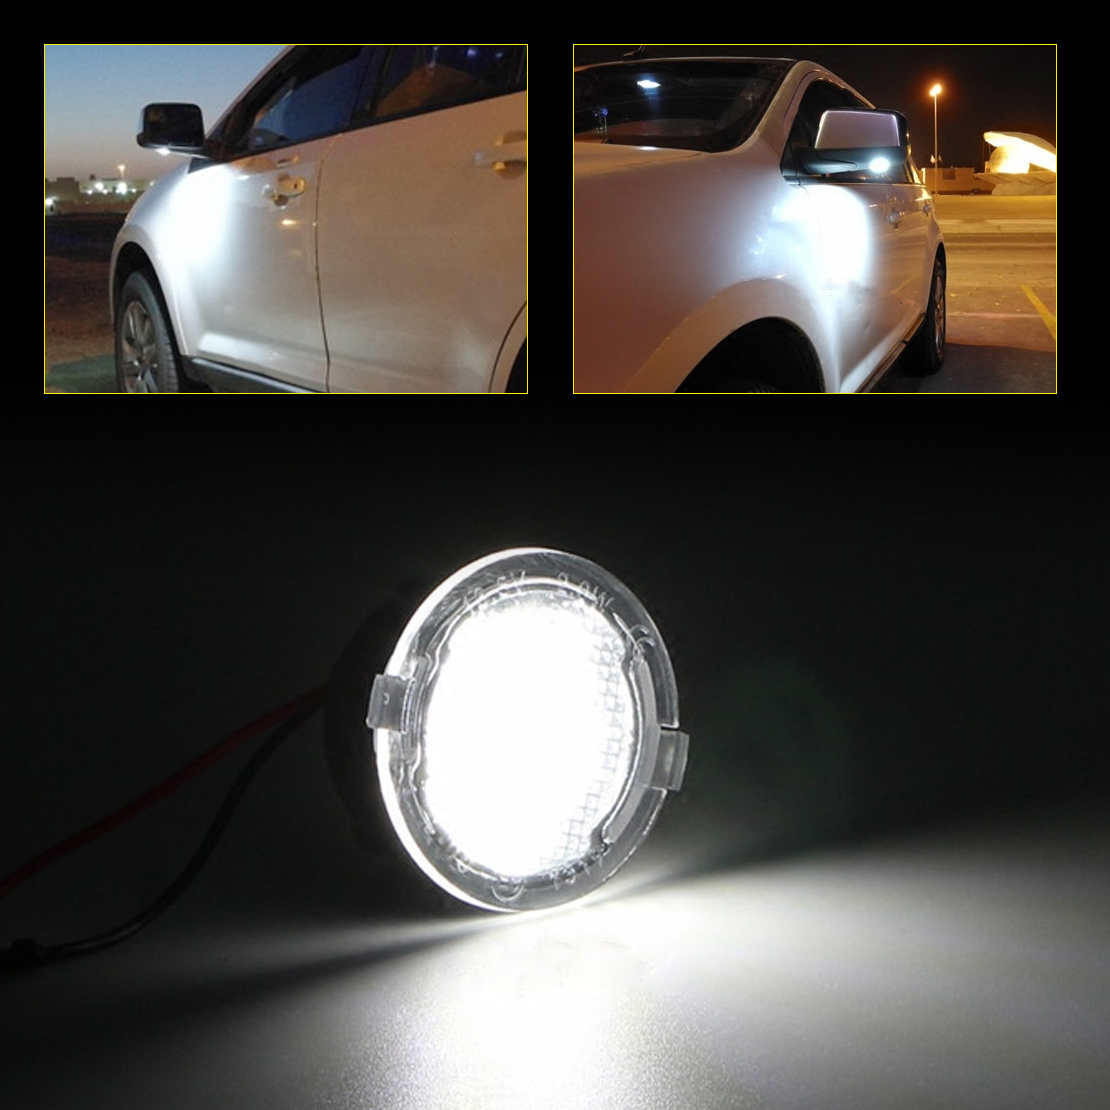 beler 2Pcs LED Under Side Mirror Light Car-styling Puddle Lamp Car Rearview Mirror Lamp For Ford F-150 2009 2010 2012 2013 2014 2pcs white under led side mirror puddle light lamp for vw golf gti mk6 6 mkvi 2010 2014